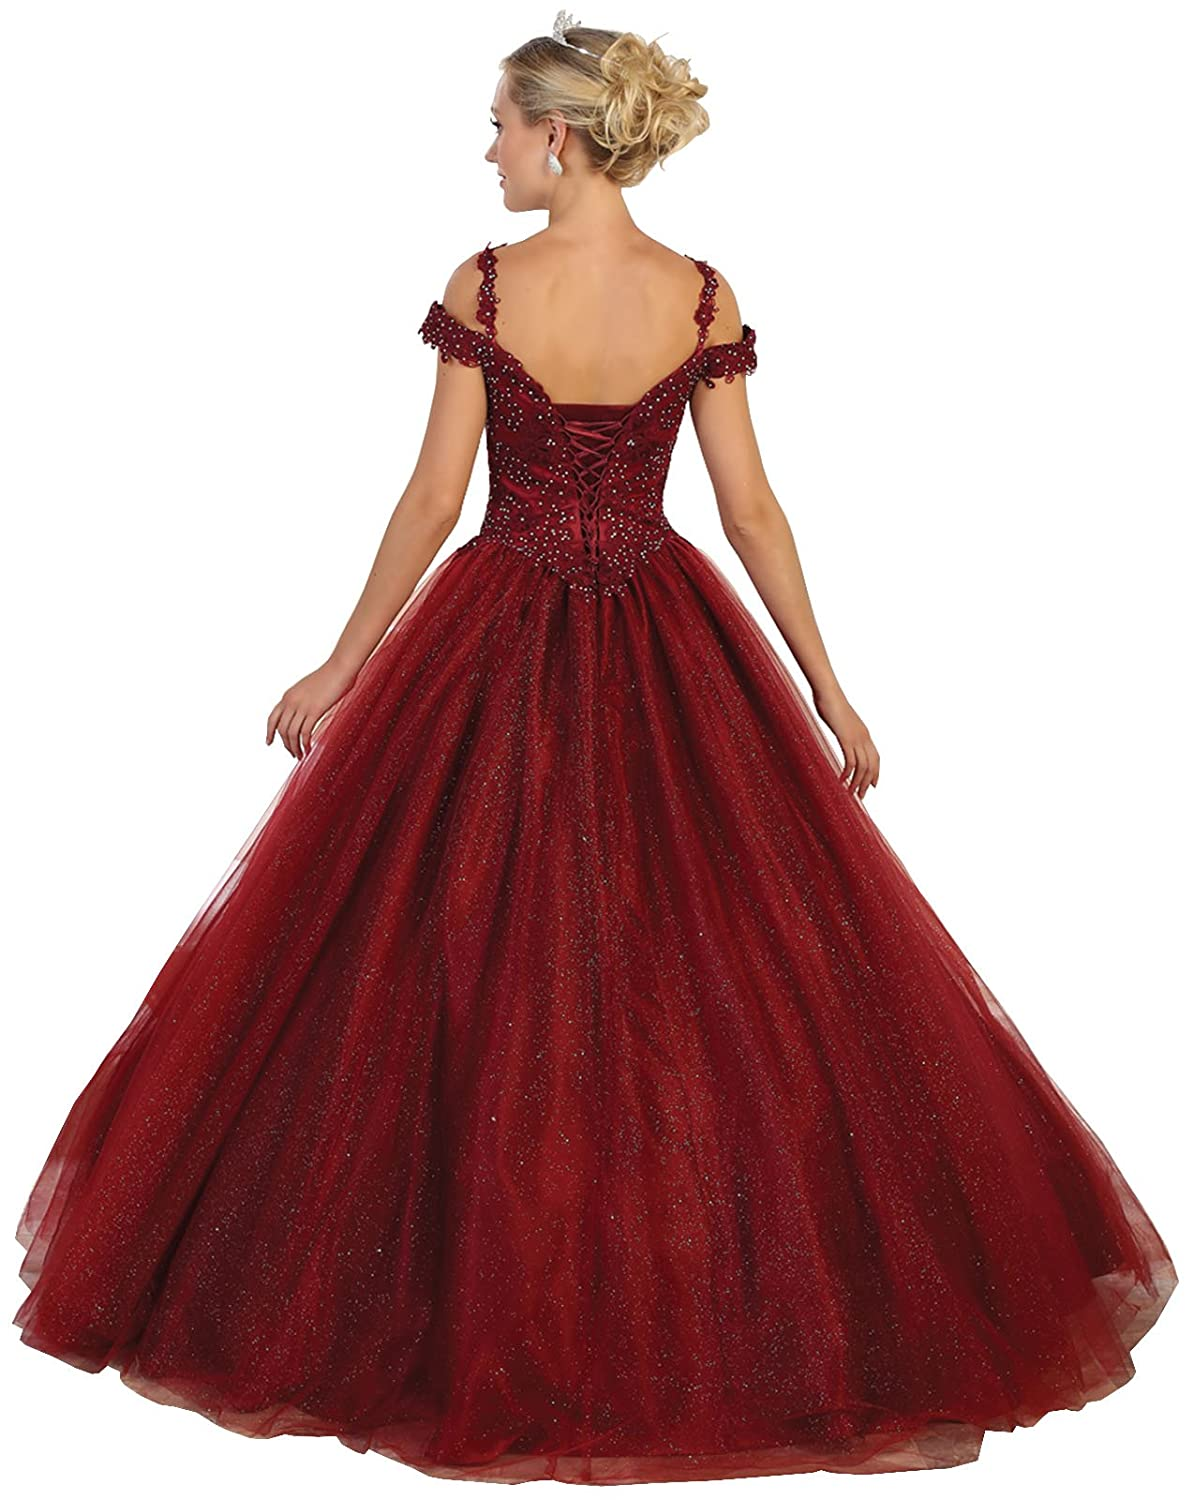 455ddd7f8fe Layla K LK101 Sweet 16 Formal Quinceanera Gown at Amazon Women s Clothing  store